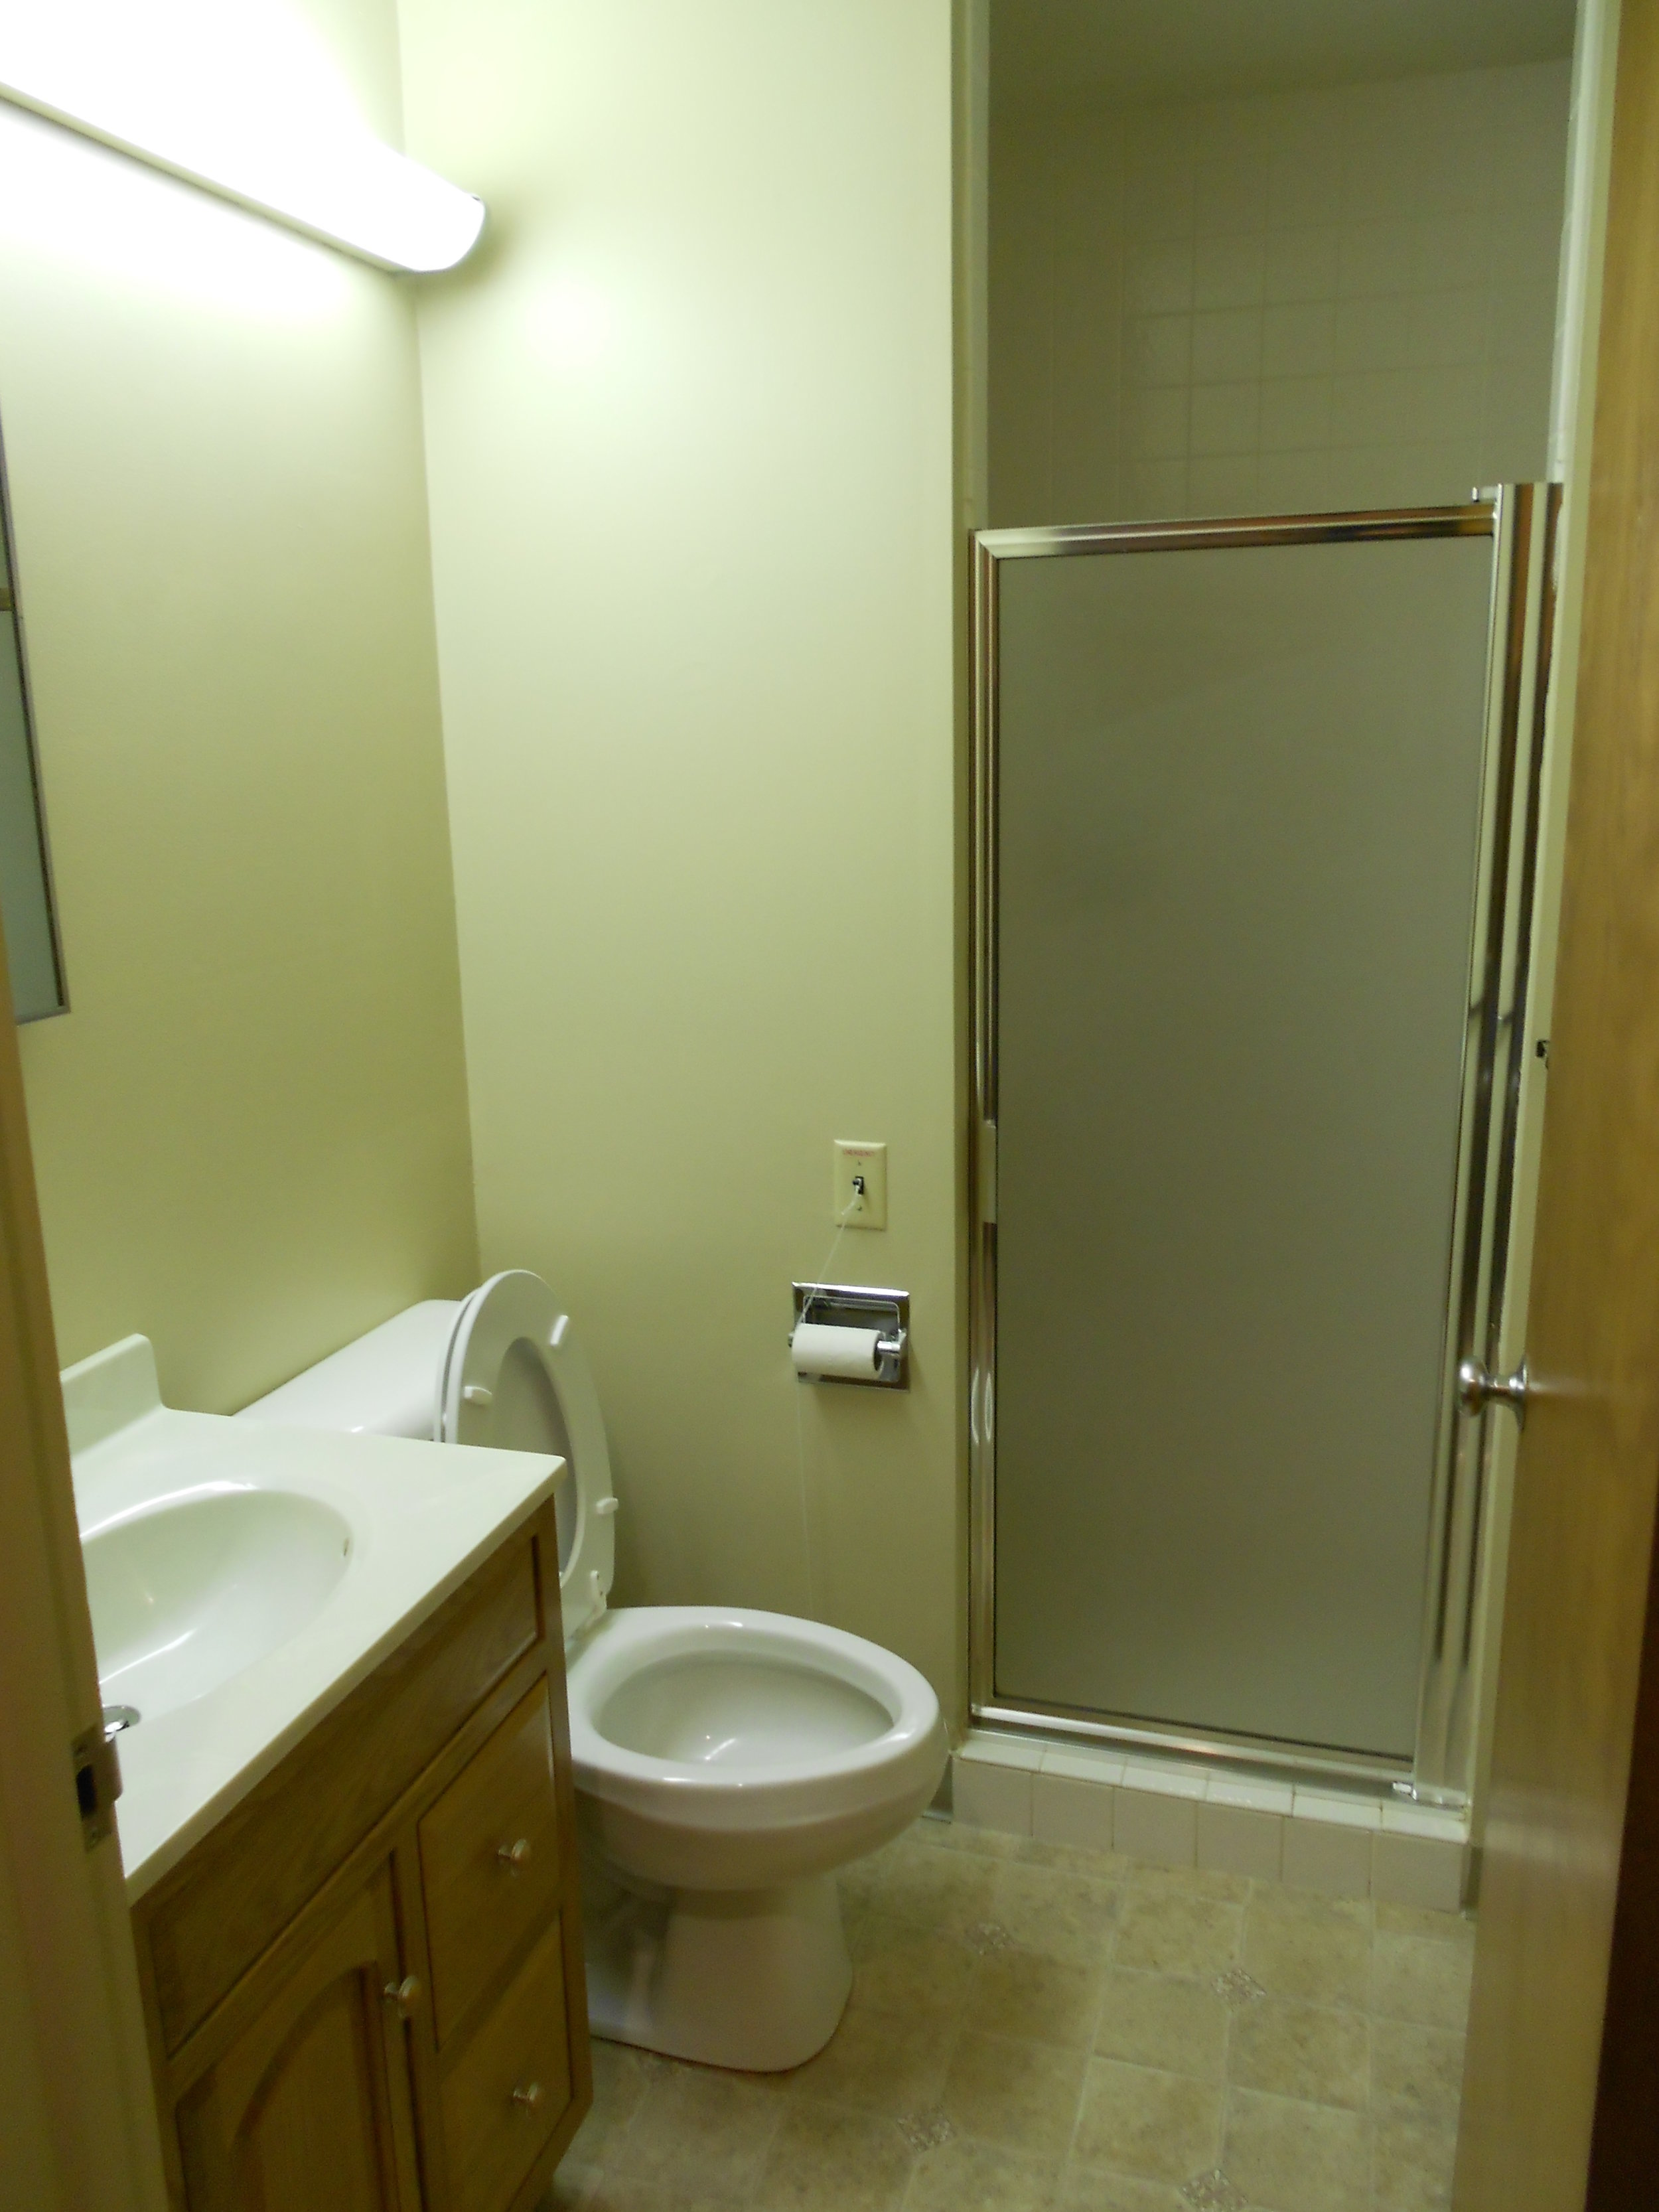 Bathroom in the one bedroom unit